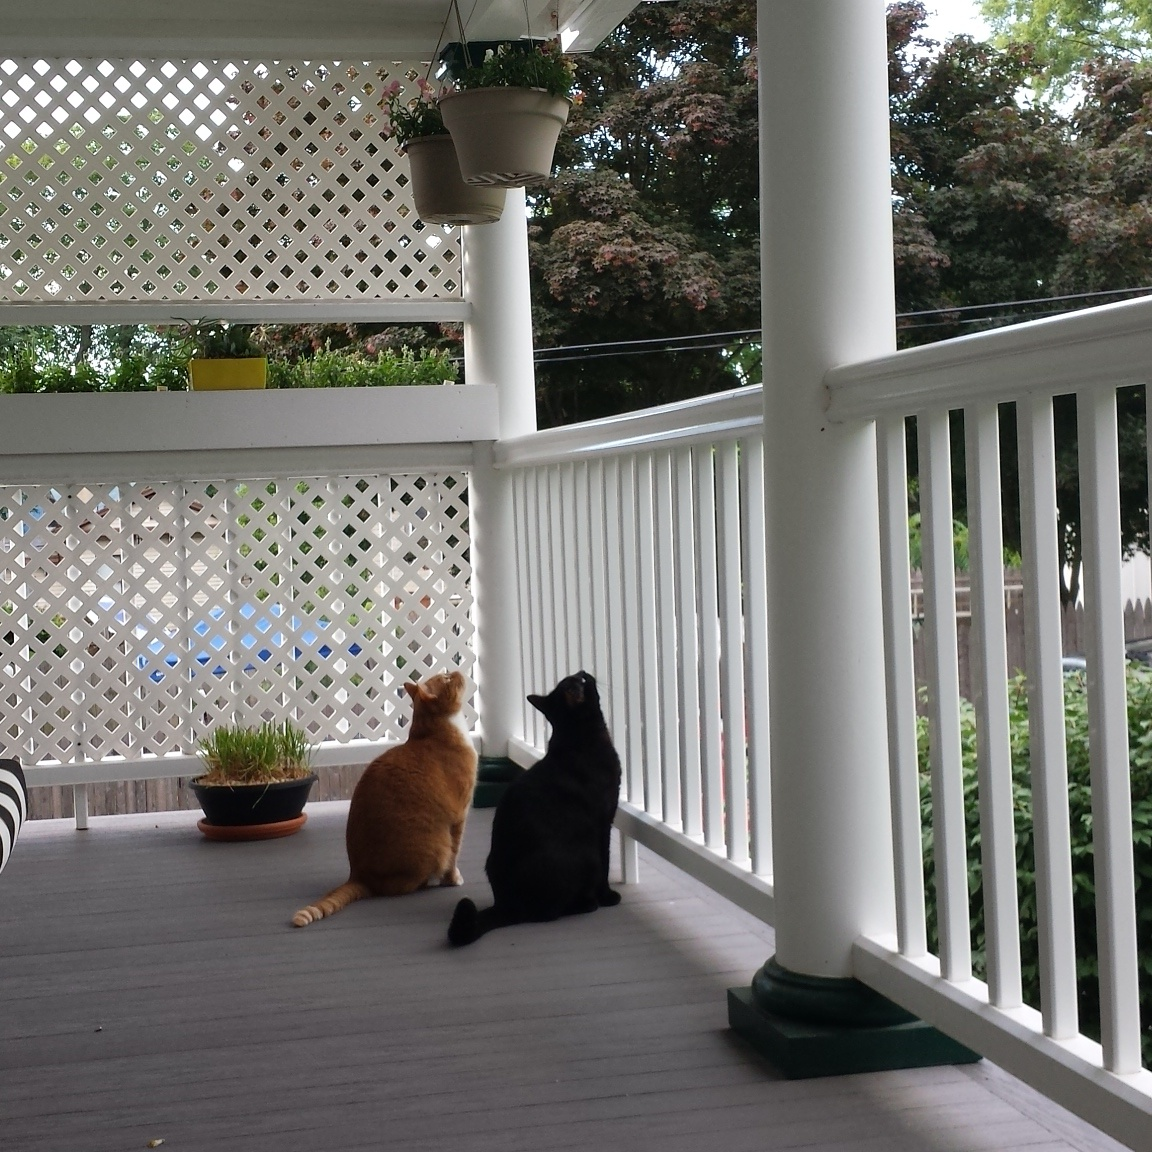 Ollie and Gus cats 20170627_birdwatching